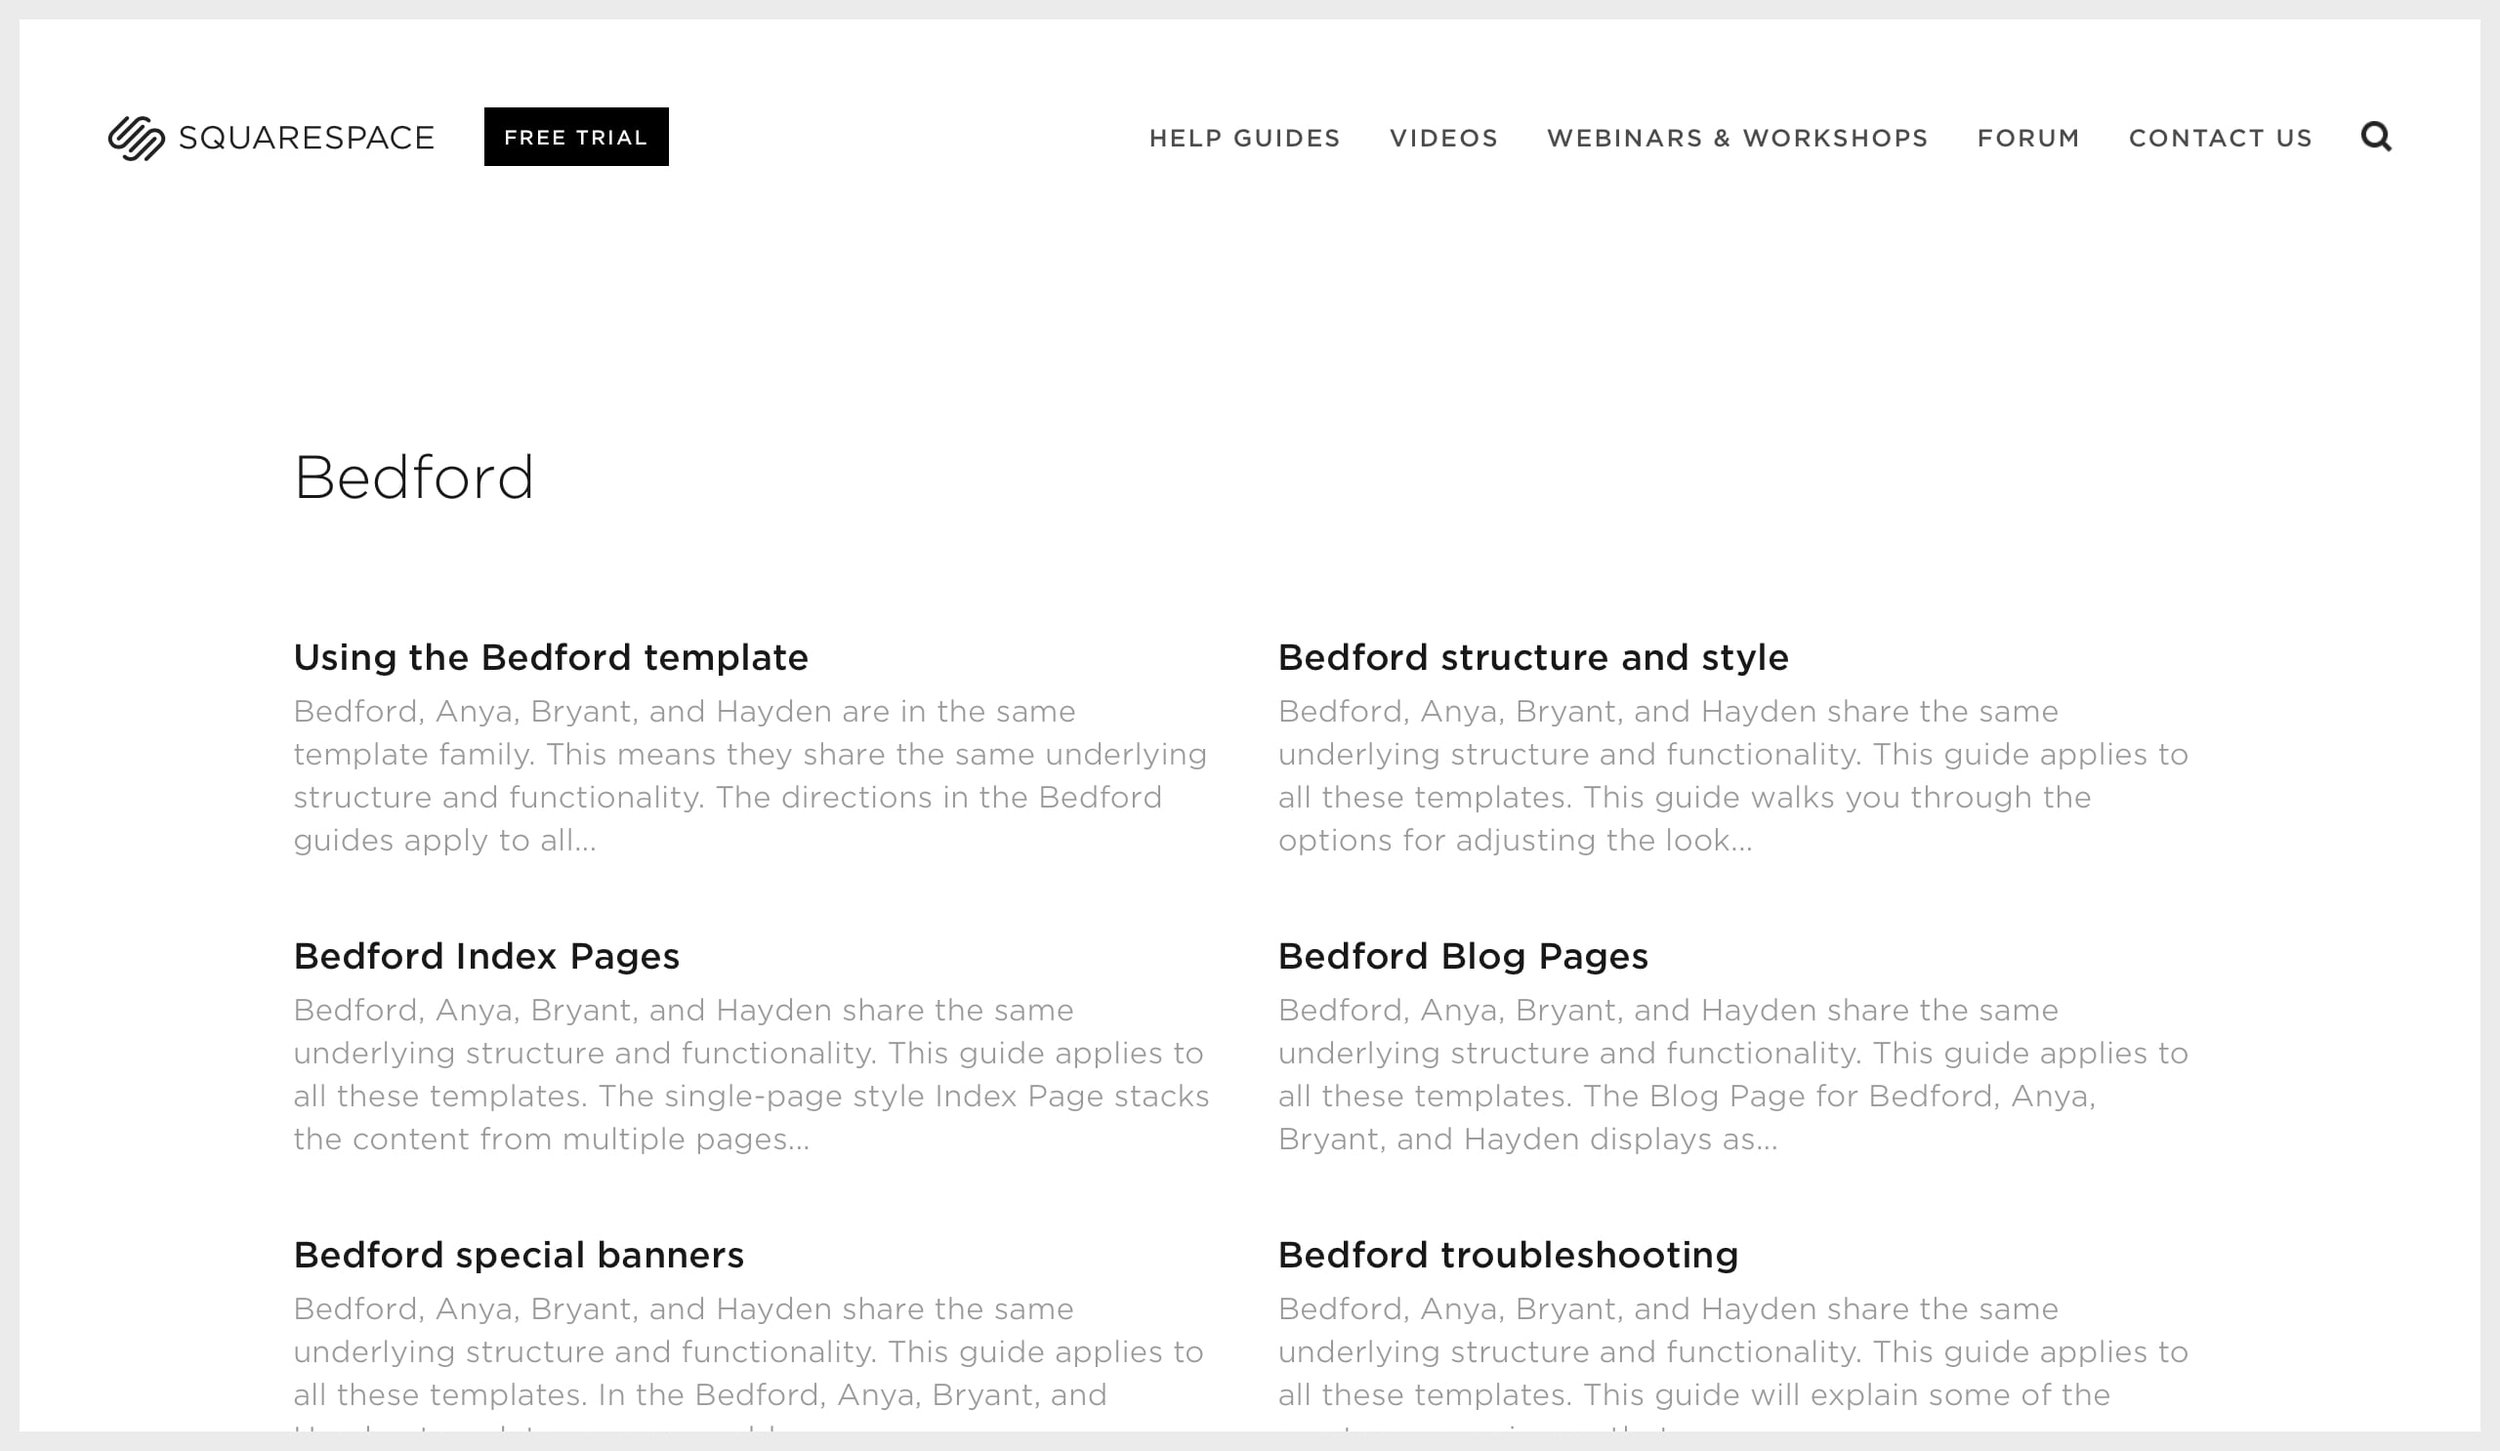 Squarespace's template guides